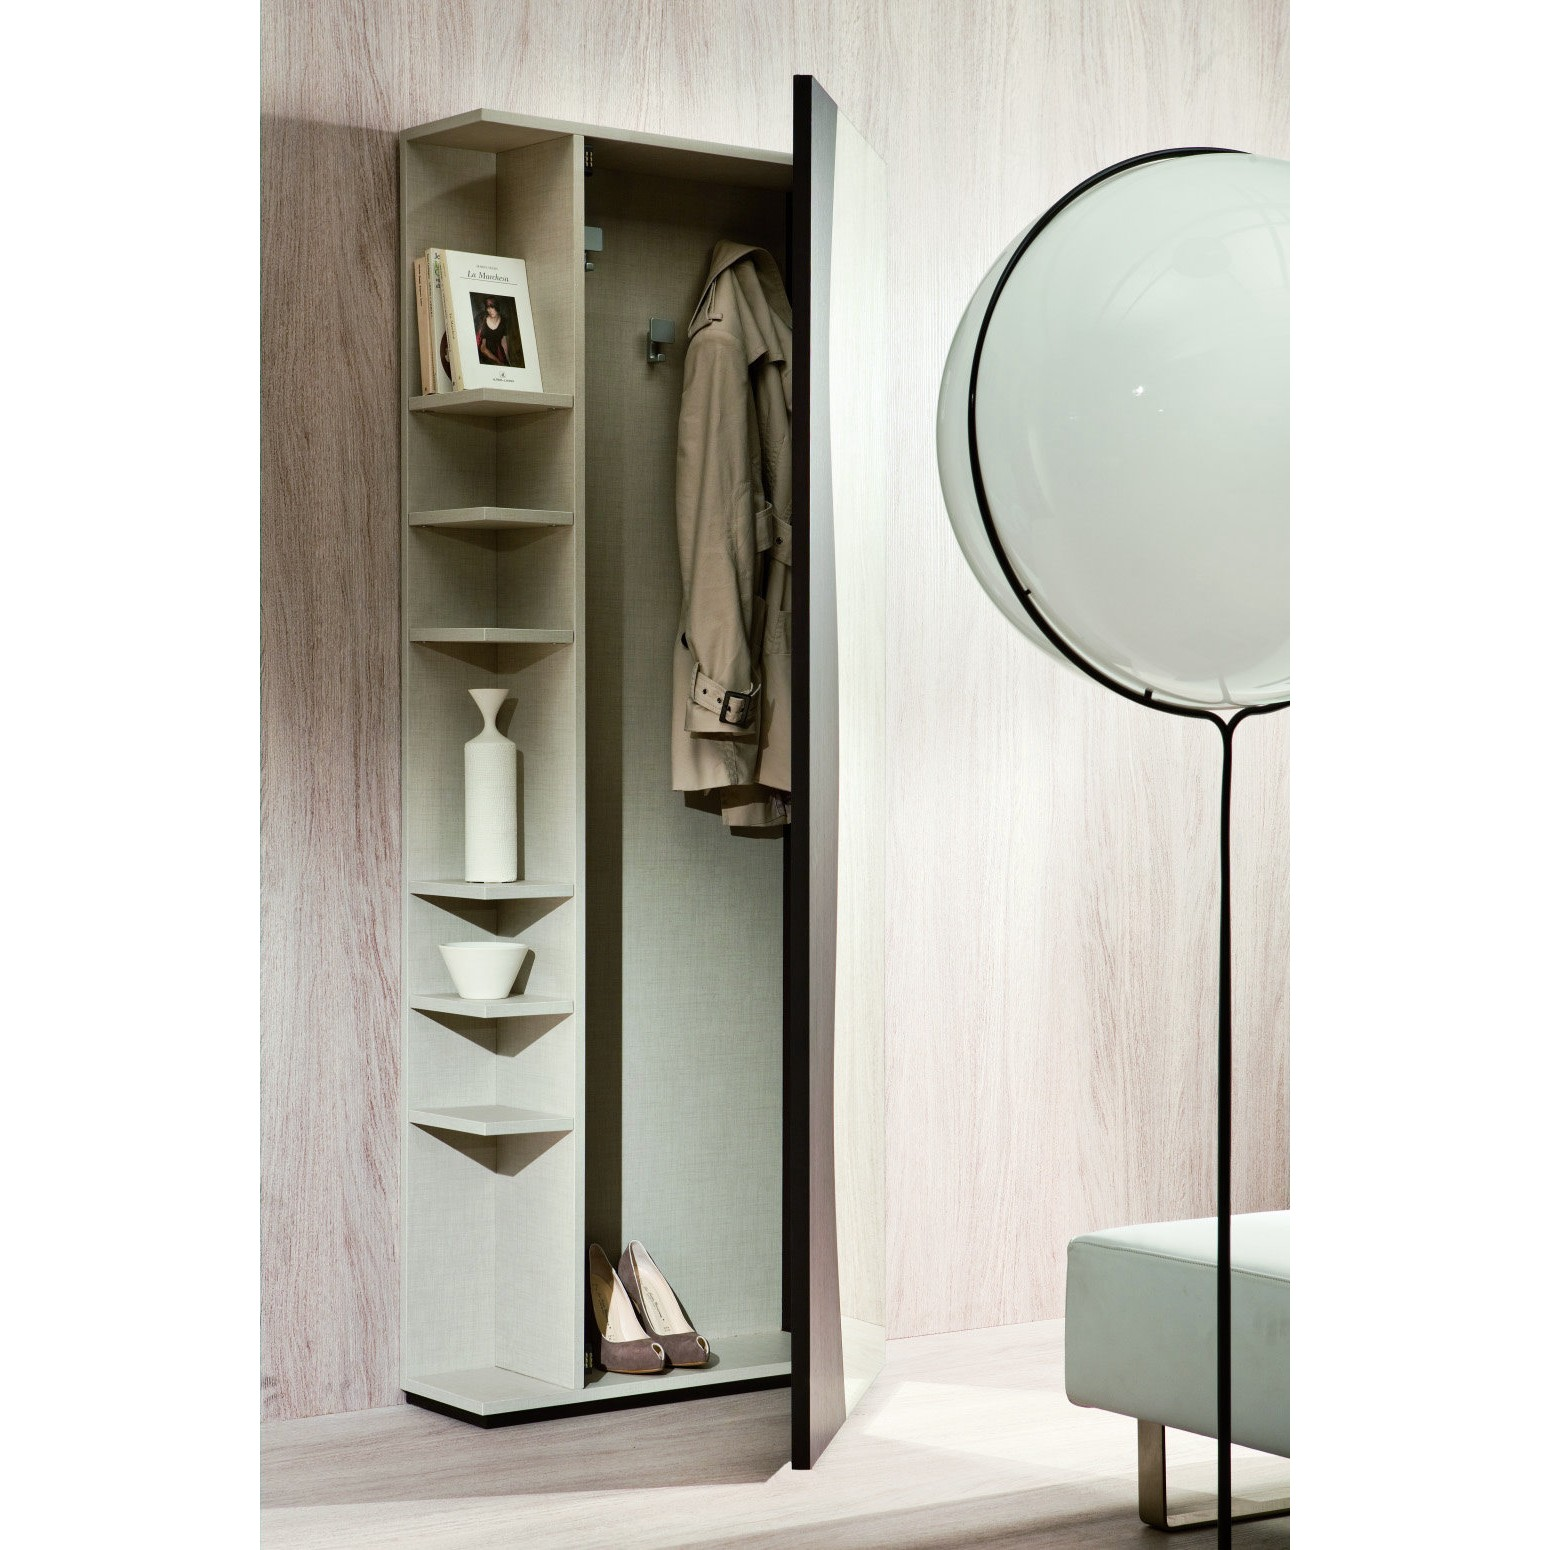 miroir porte manteau entree menuiserie. Black Bedroom Furniture Sets. Home Design Ideas